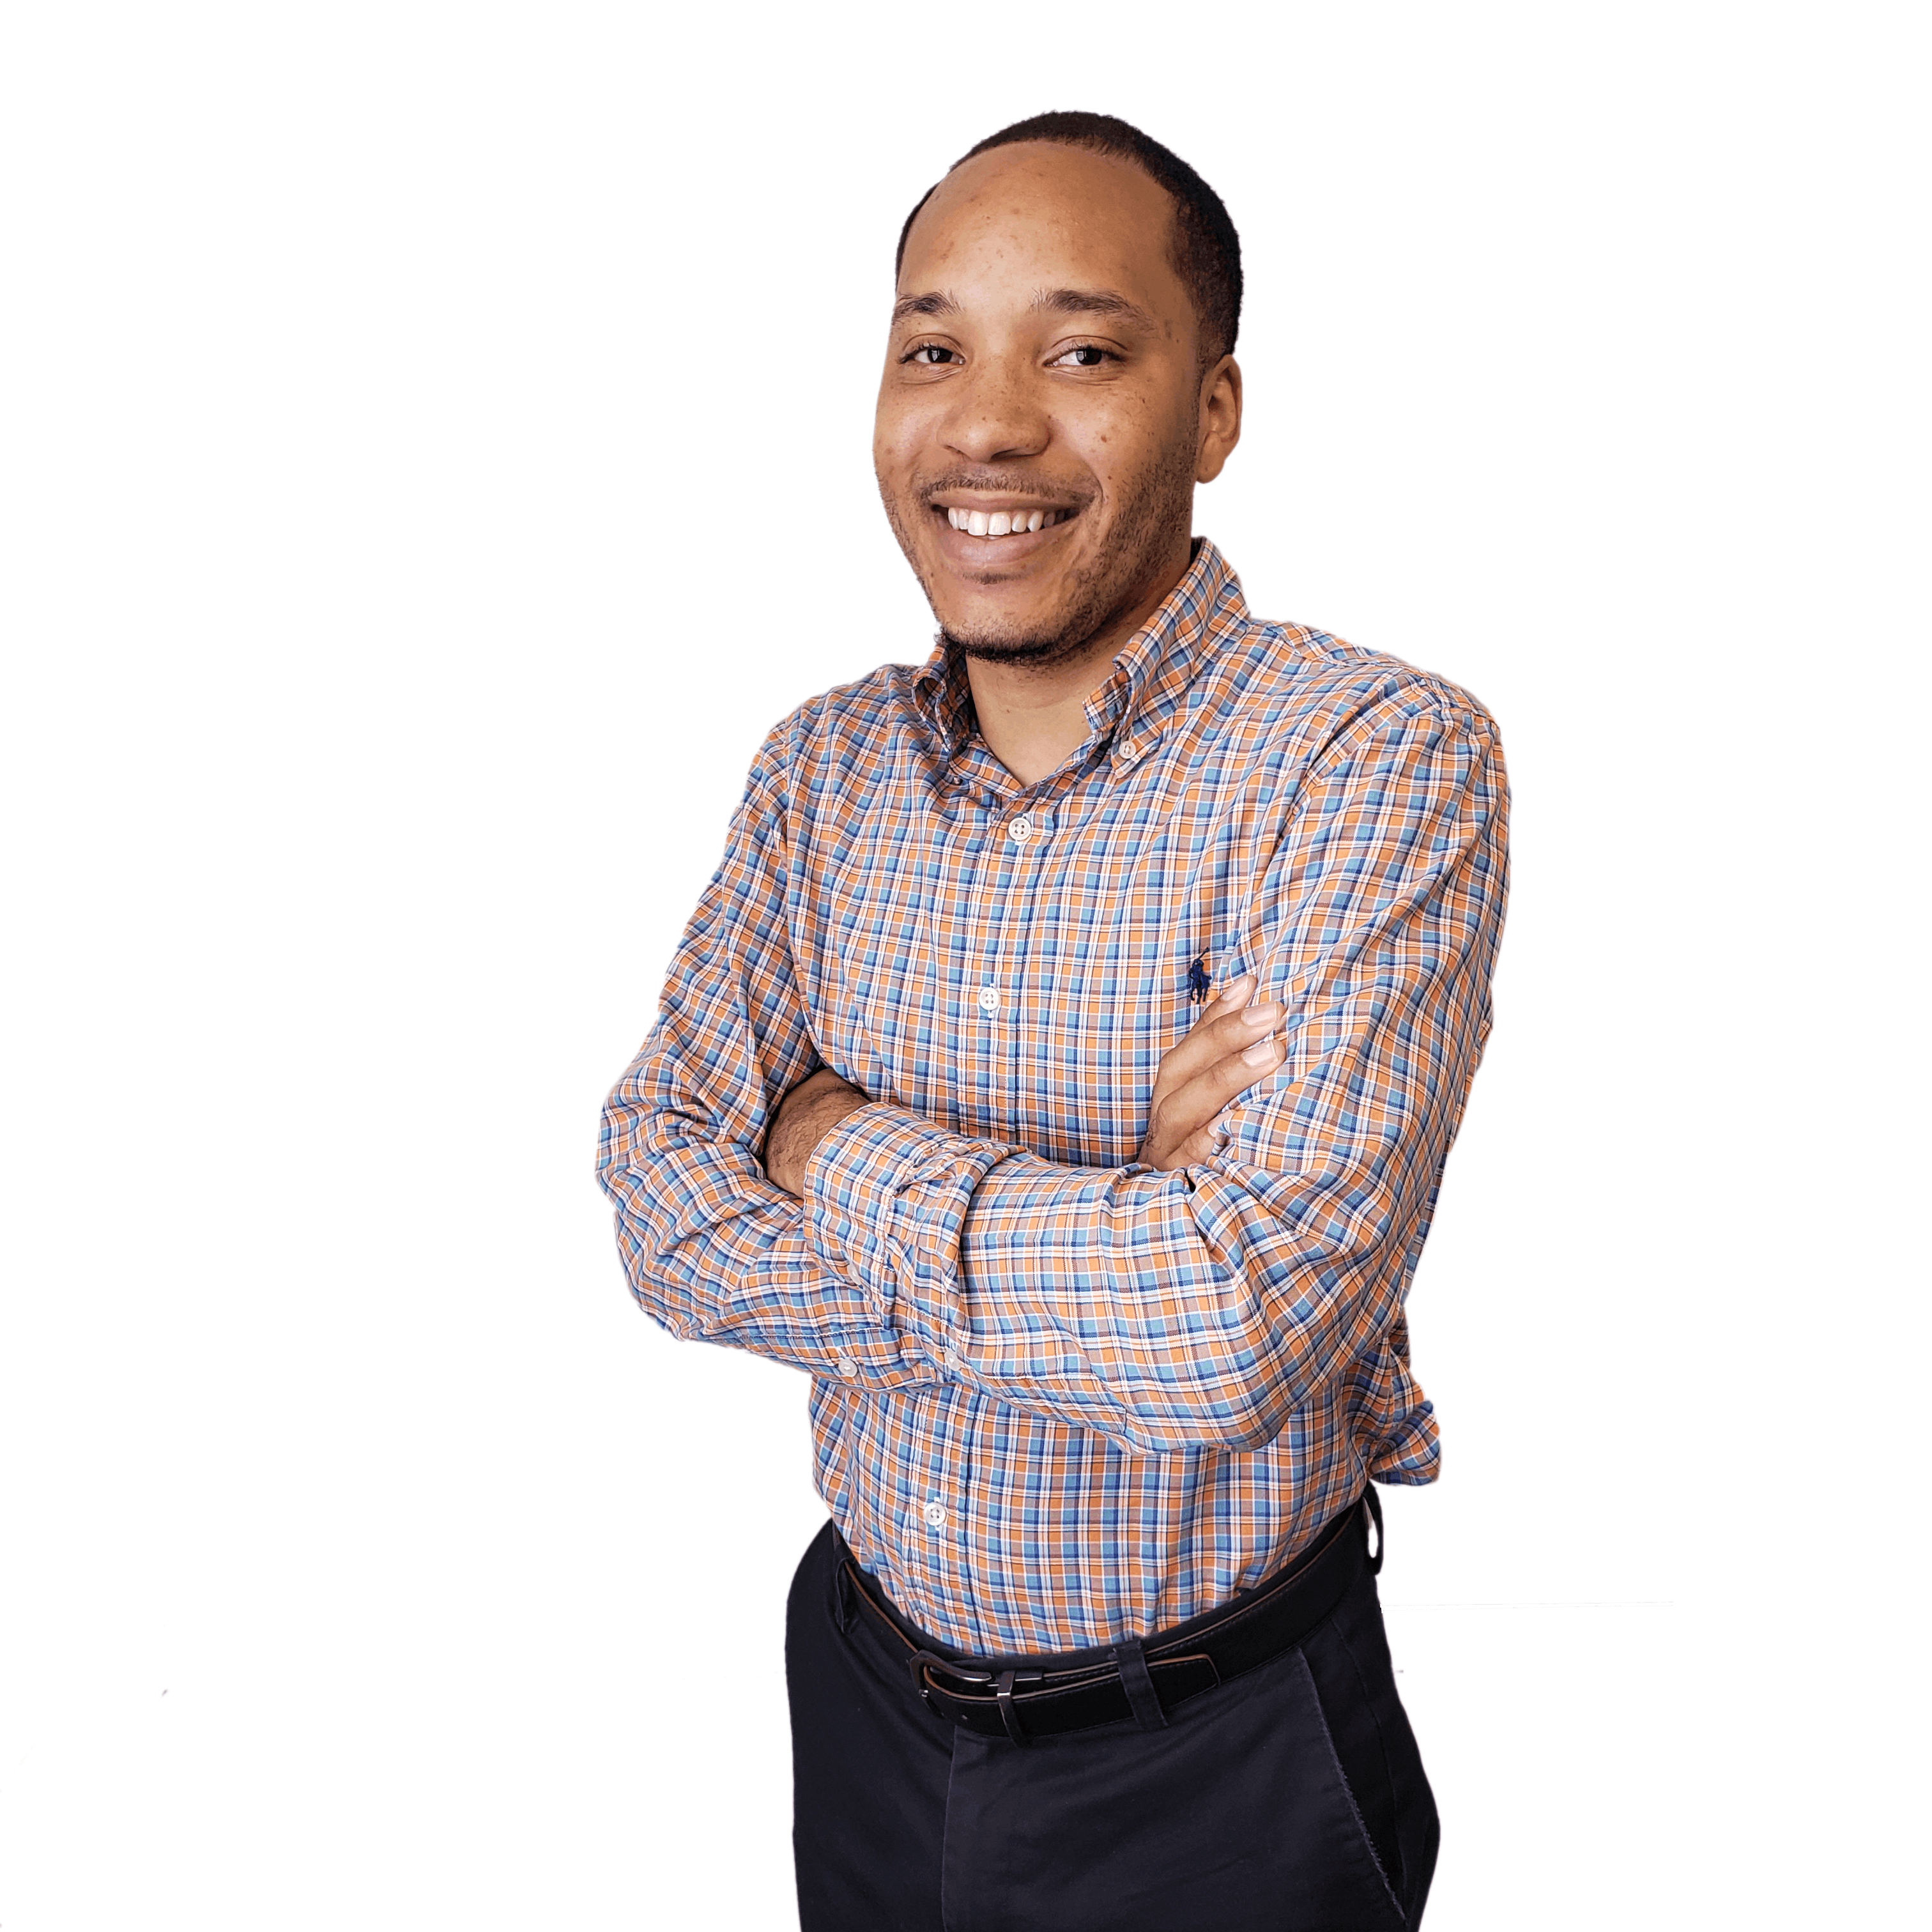 Employee Spotlight: D'Andre Crutcher